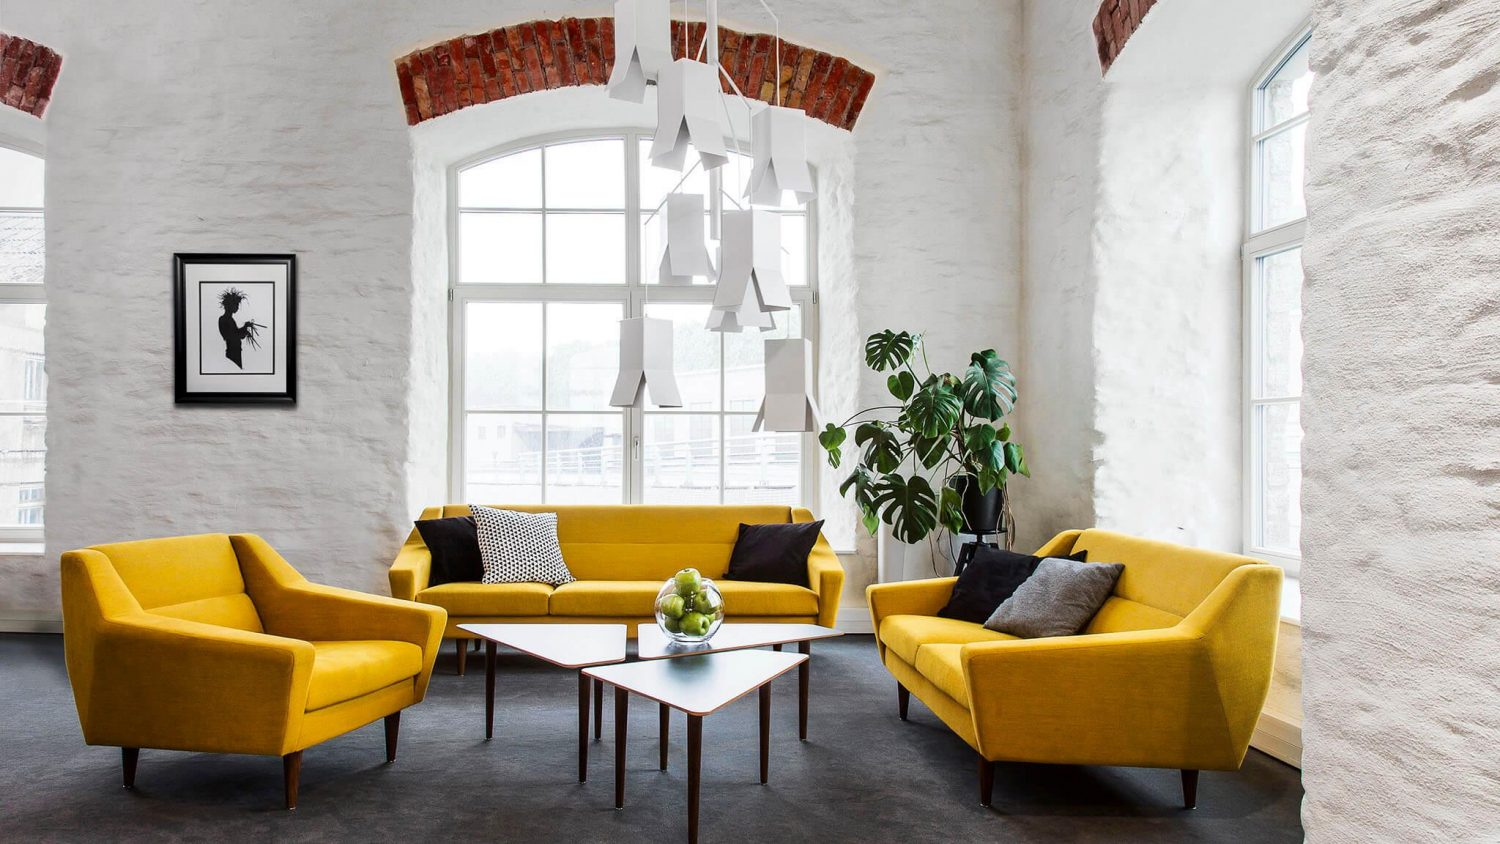 Get To Know The Best Furniture Stores In Tallinn tallinn Get To Know The Best Furniture Stores In Tallinn 2 1 scaled